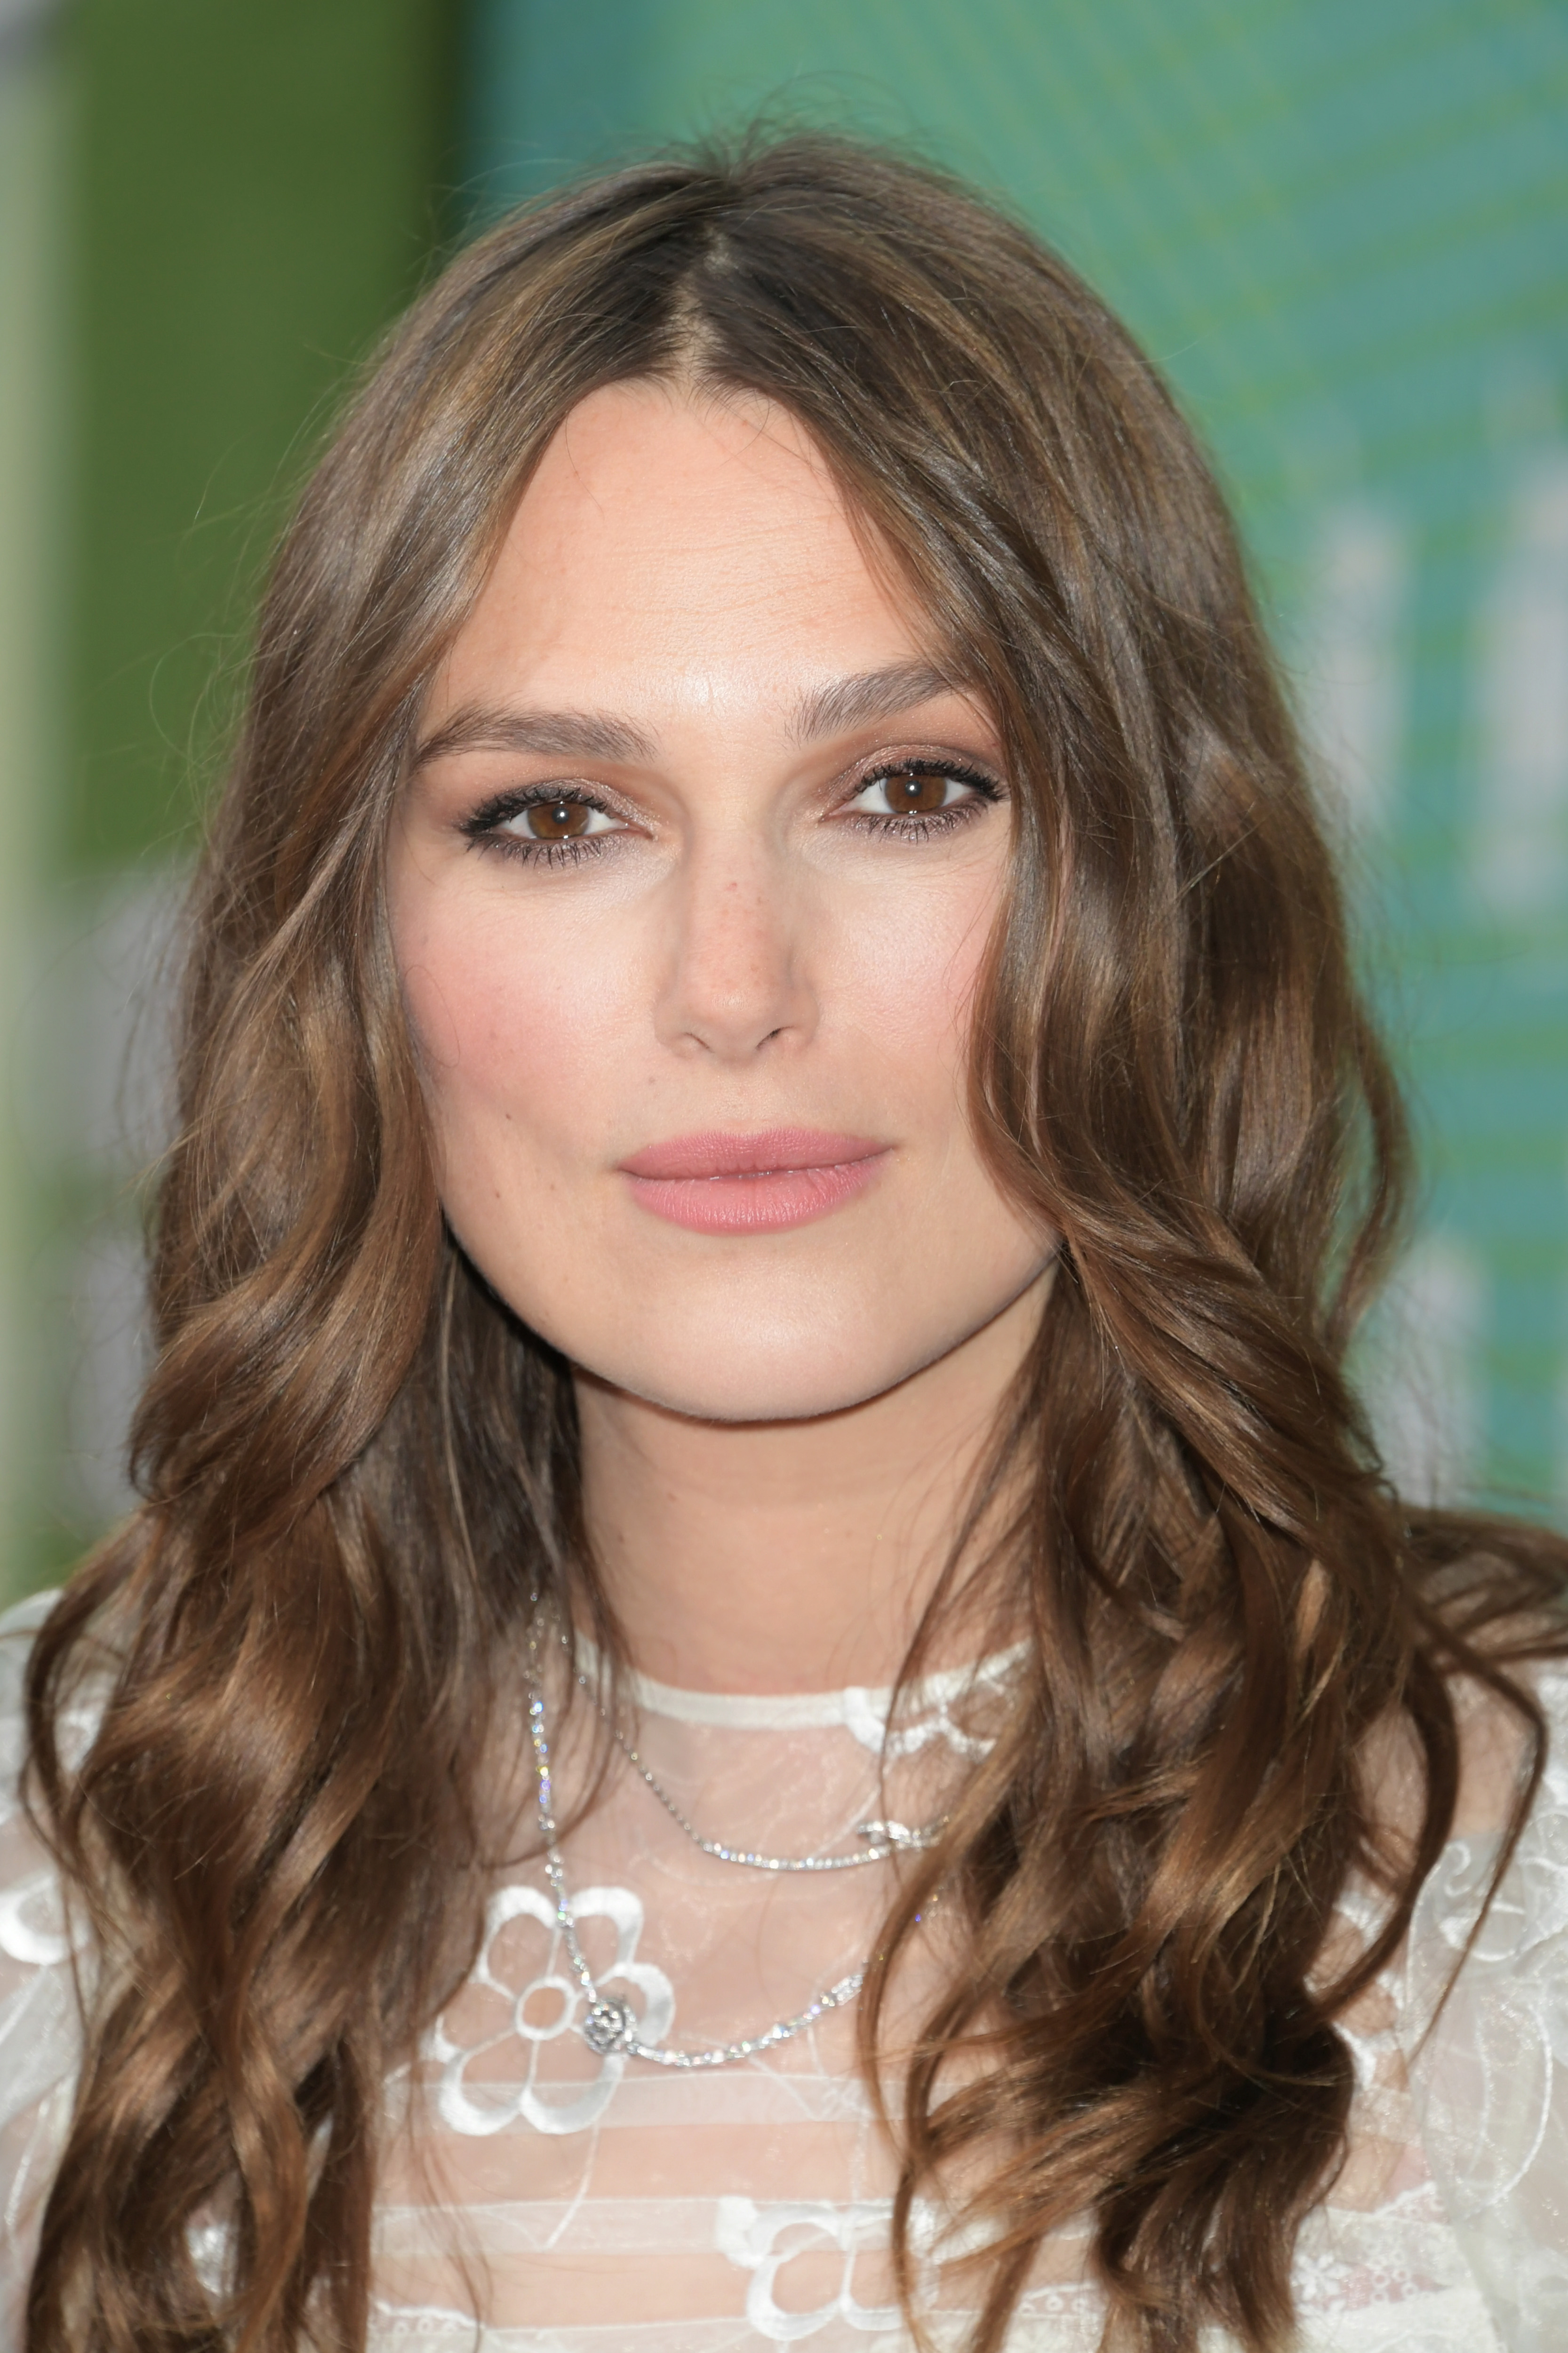 Keira Knightley at an event for Official Secrets (2019)